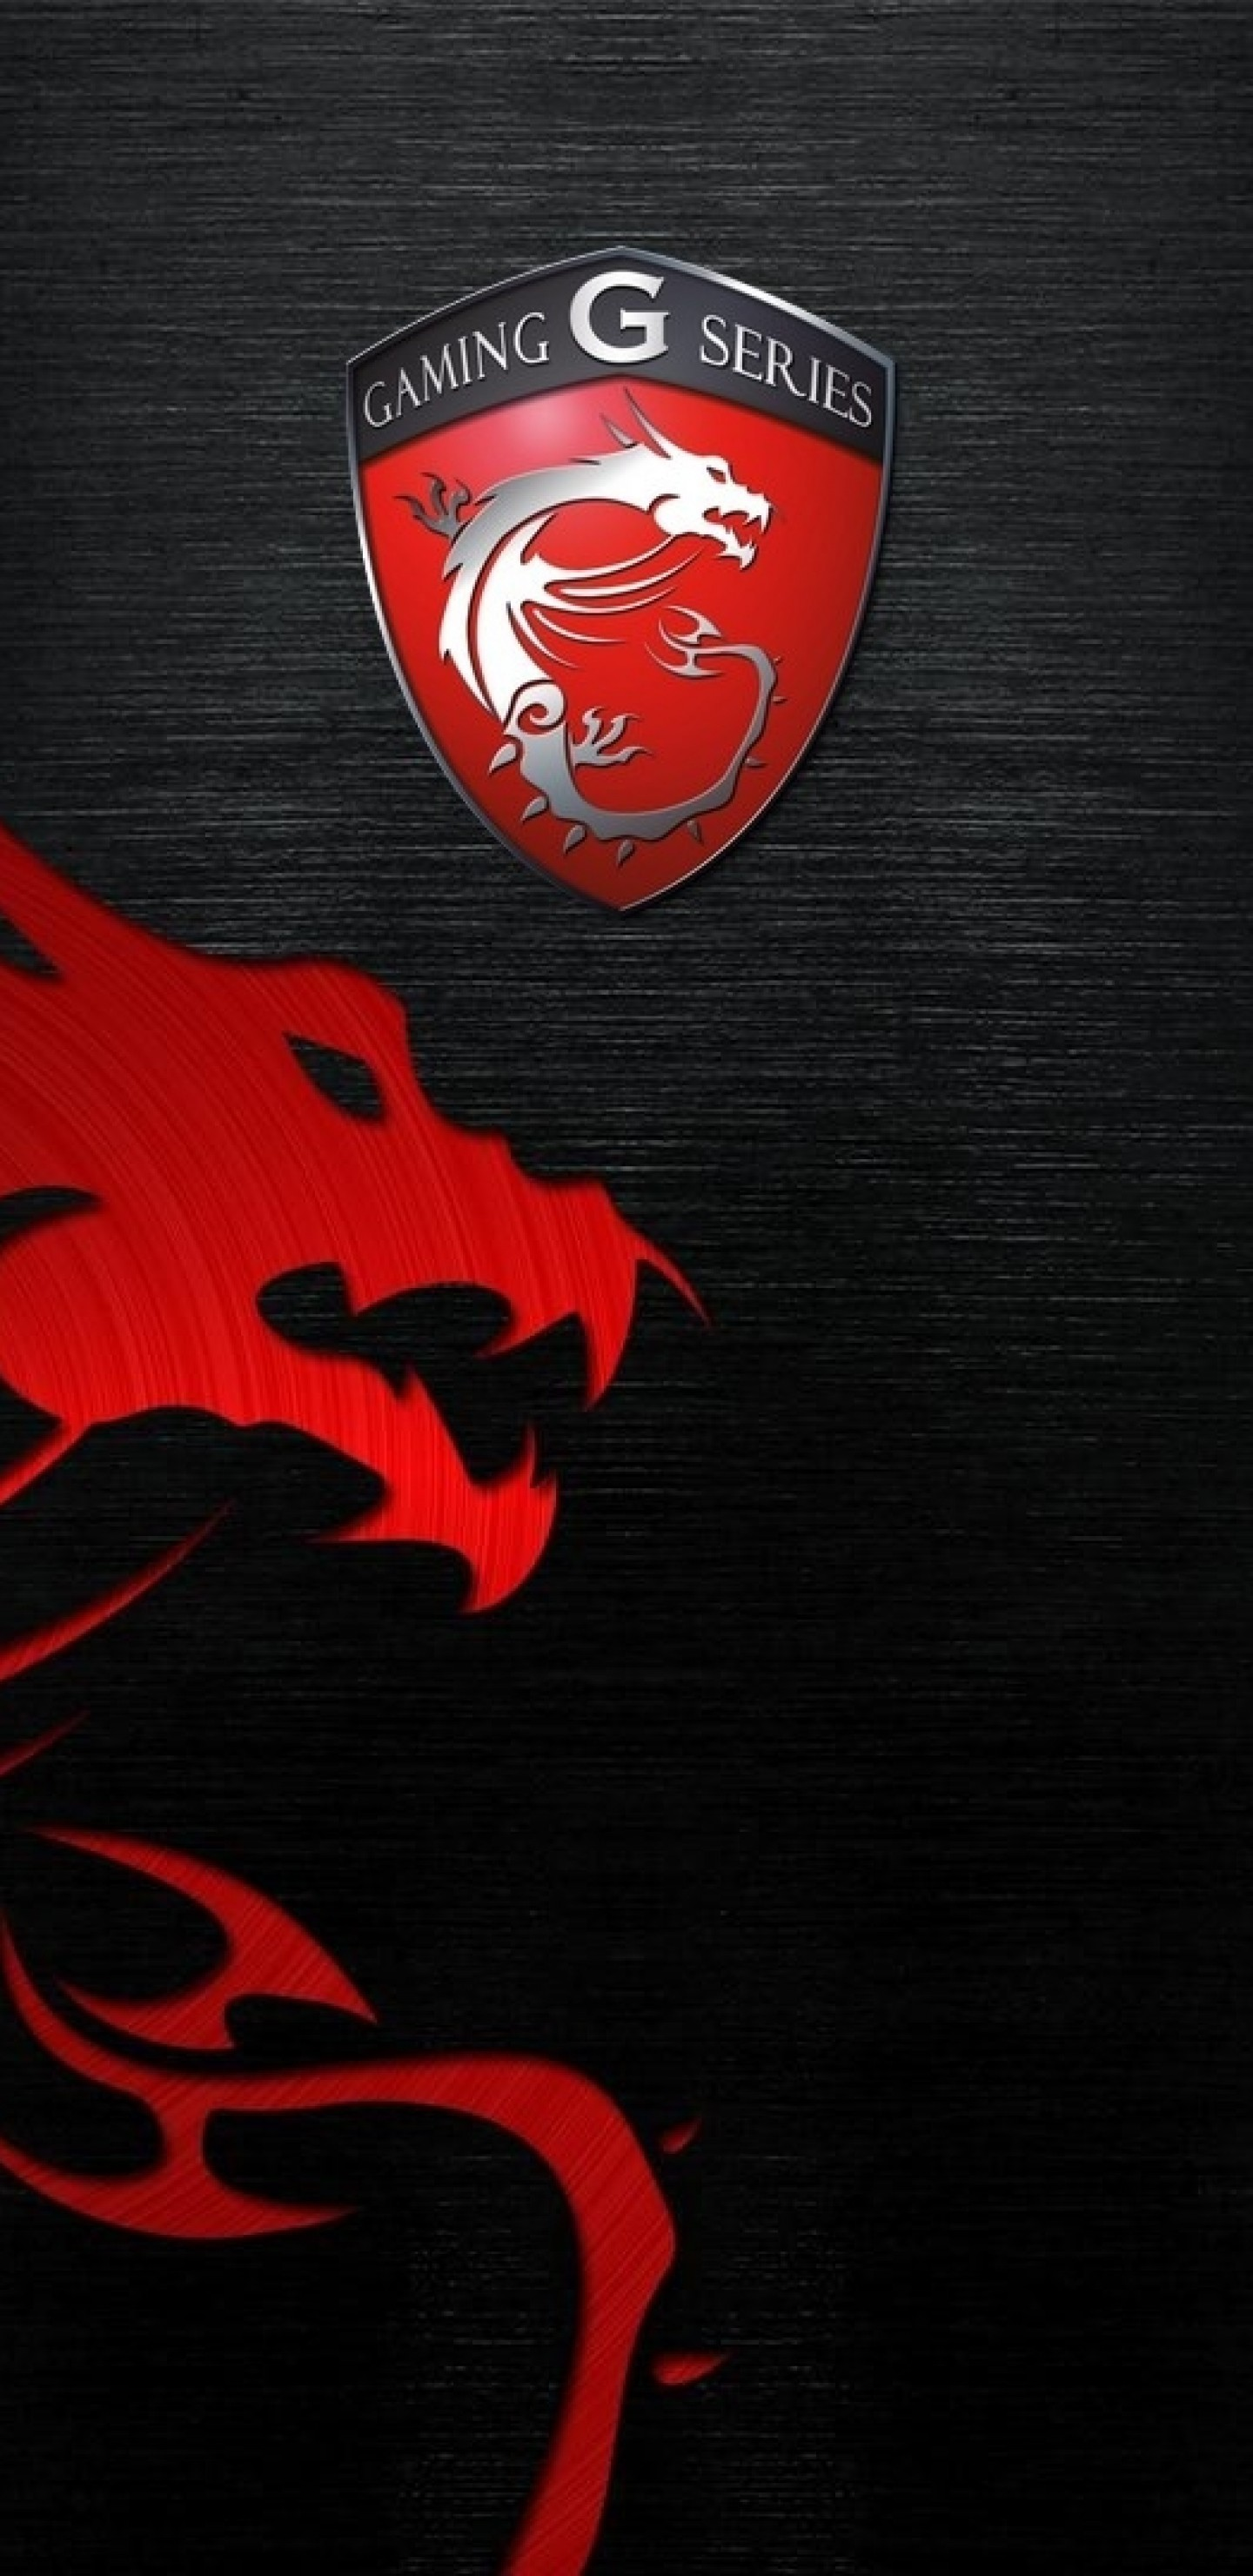 1440x2960 1920x1200 Mortal-Kombat-Logo-Wallpaper